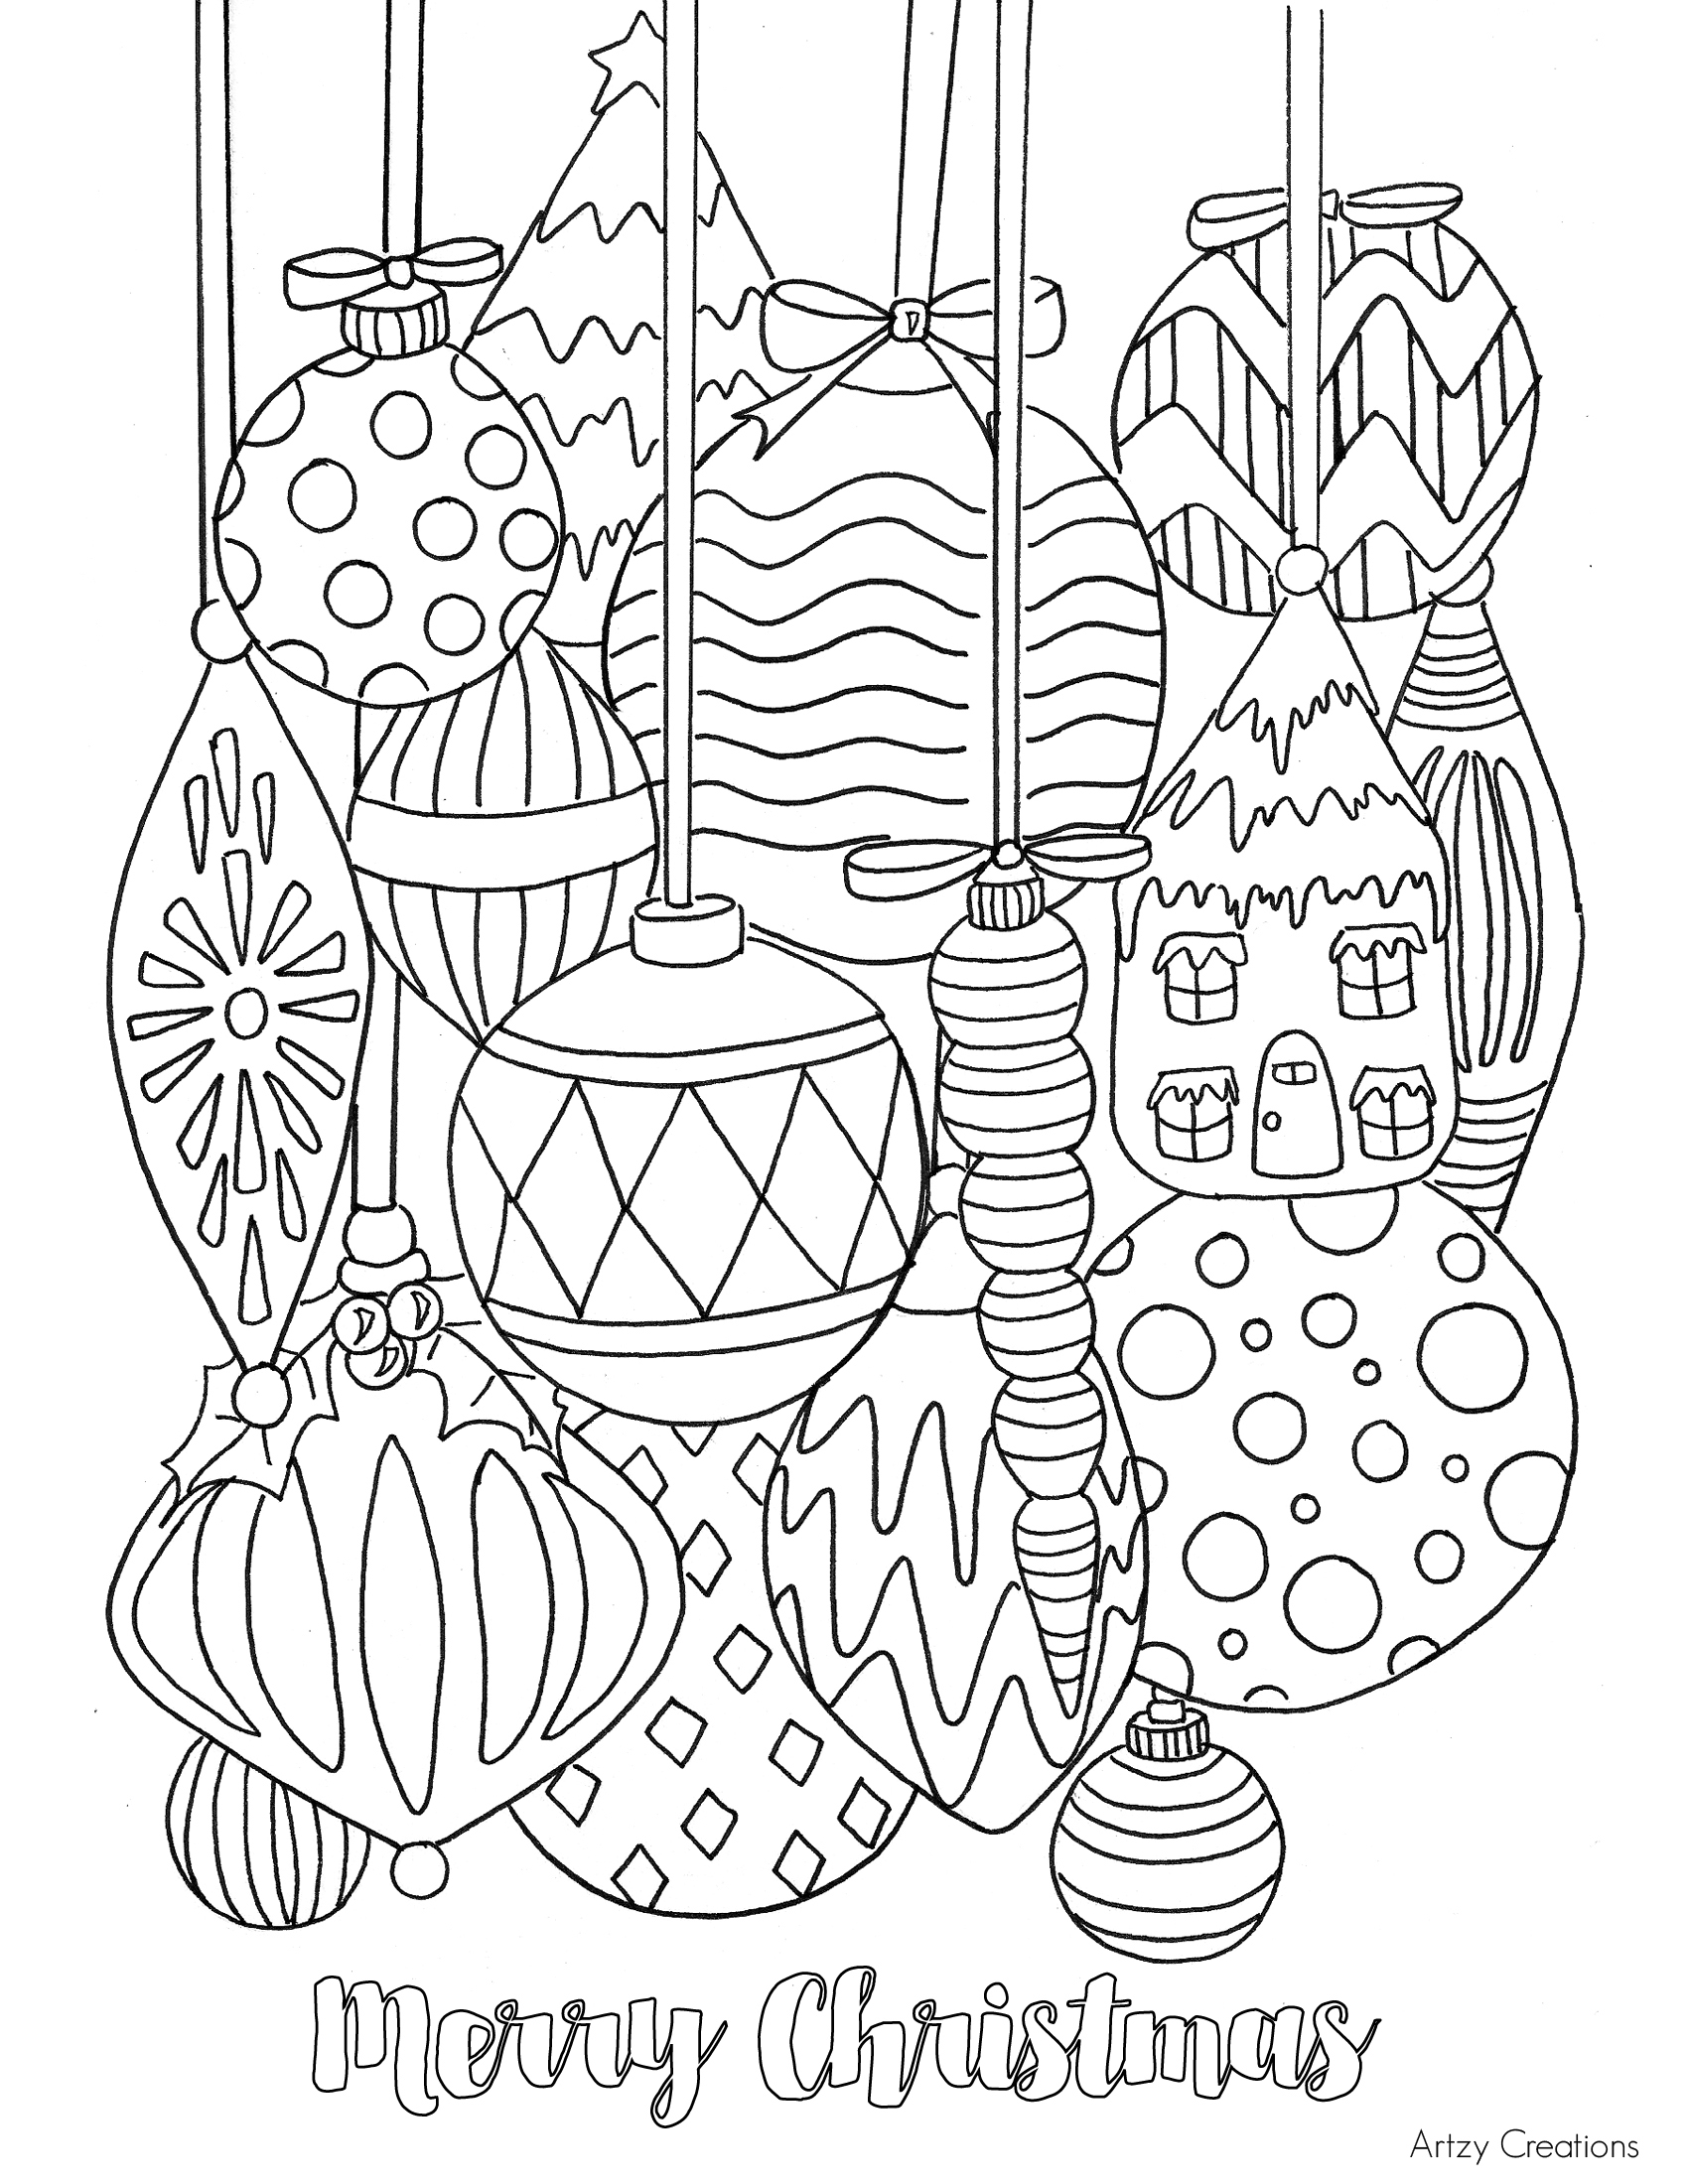 Christmas Colouring In Pages For Adults With Free Adult Coloring Download Books